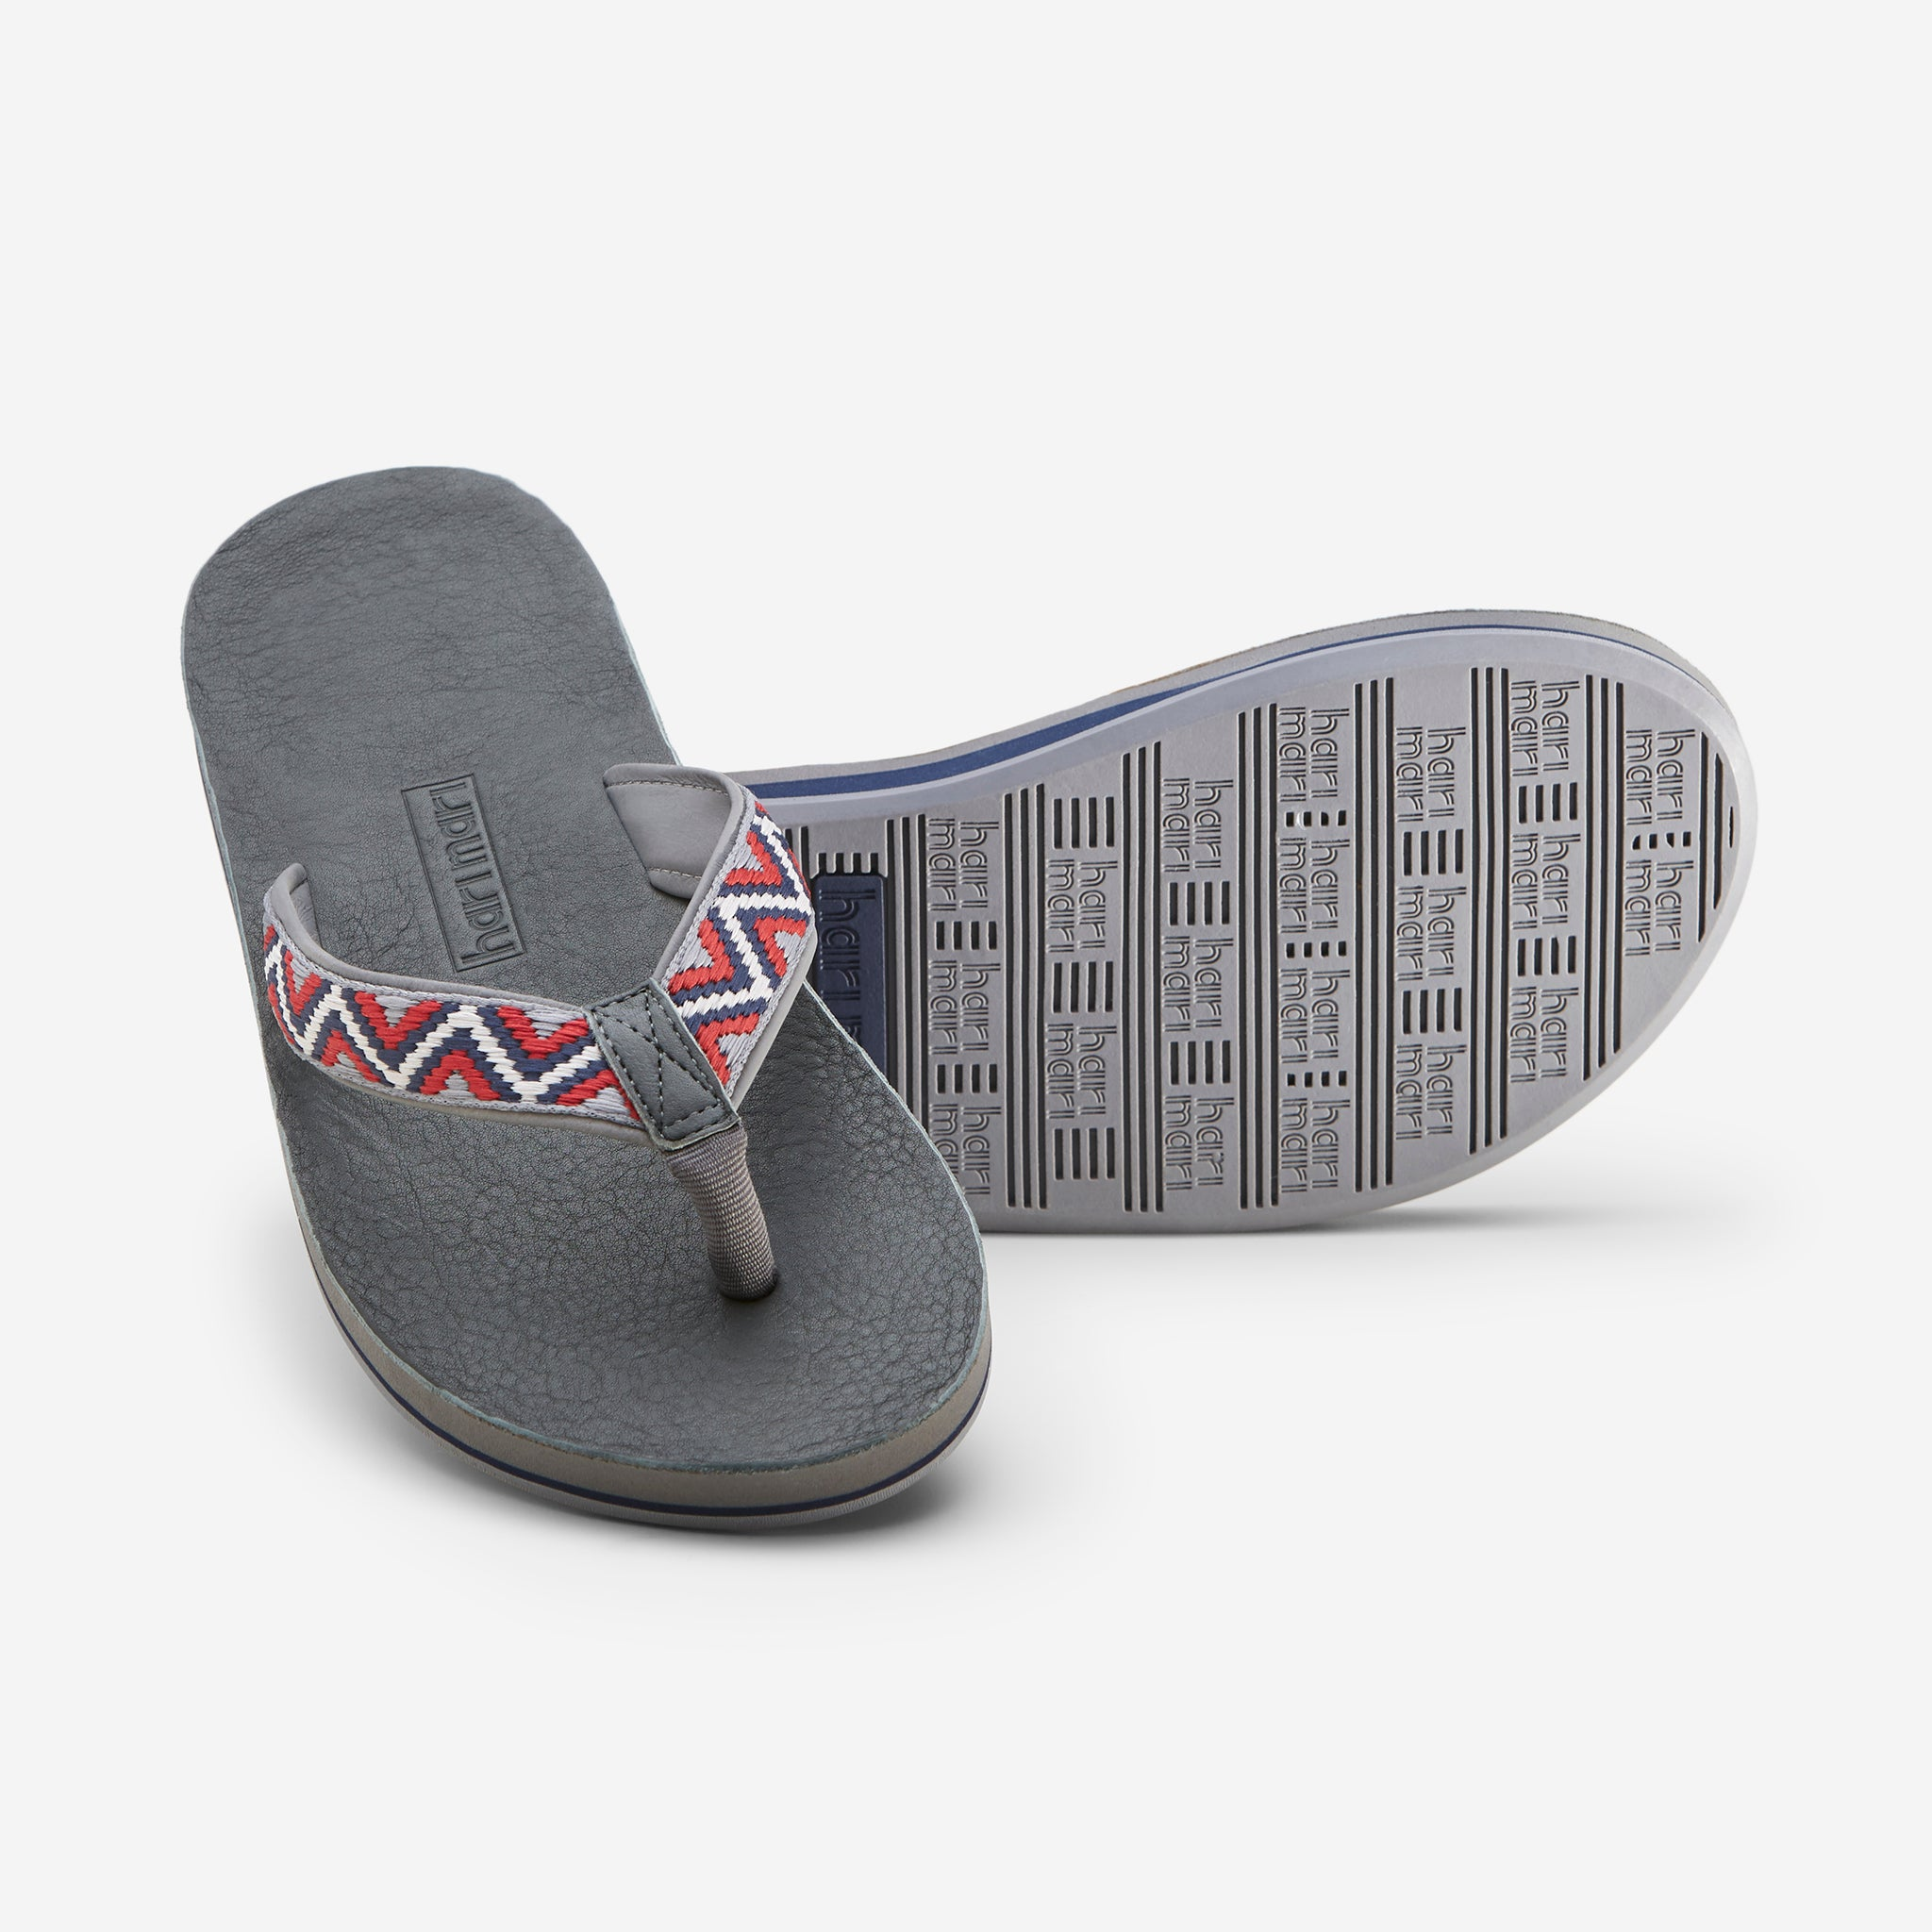 Hari Mari Men'a Fields Camino Flip Flops in slate/multi color on white background showing flip flop and bottom of flip flop rubber outsole